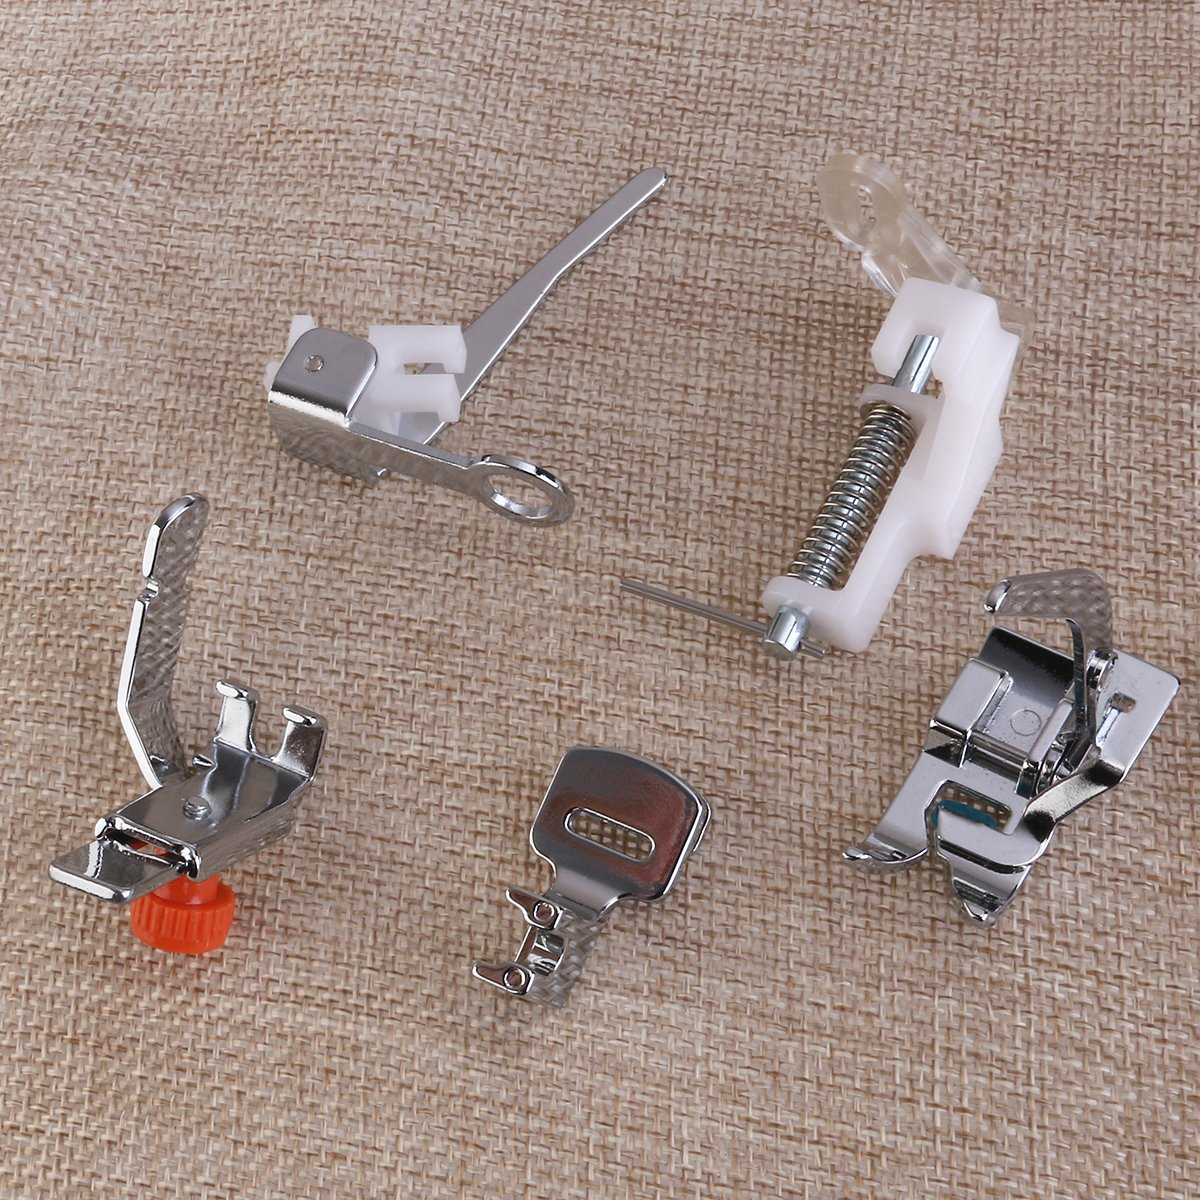 Amazon.com: ROSENICE Sewing Machine Domestic Foot Presser Feet Set for Brother Singer Janome A 42pcs